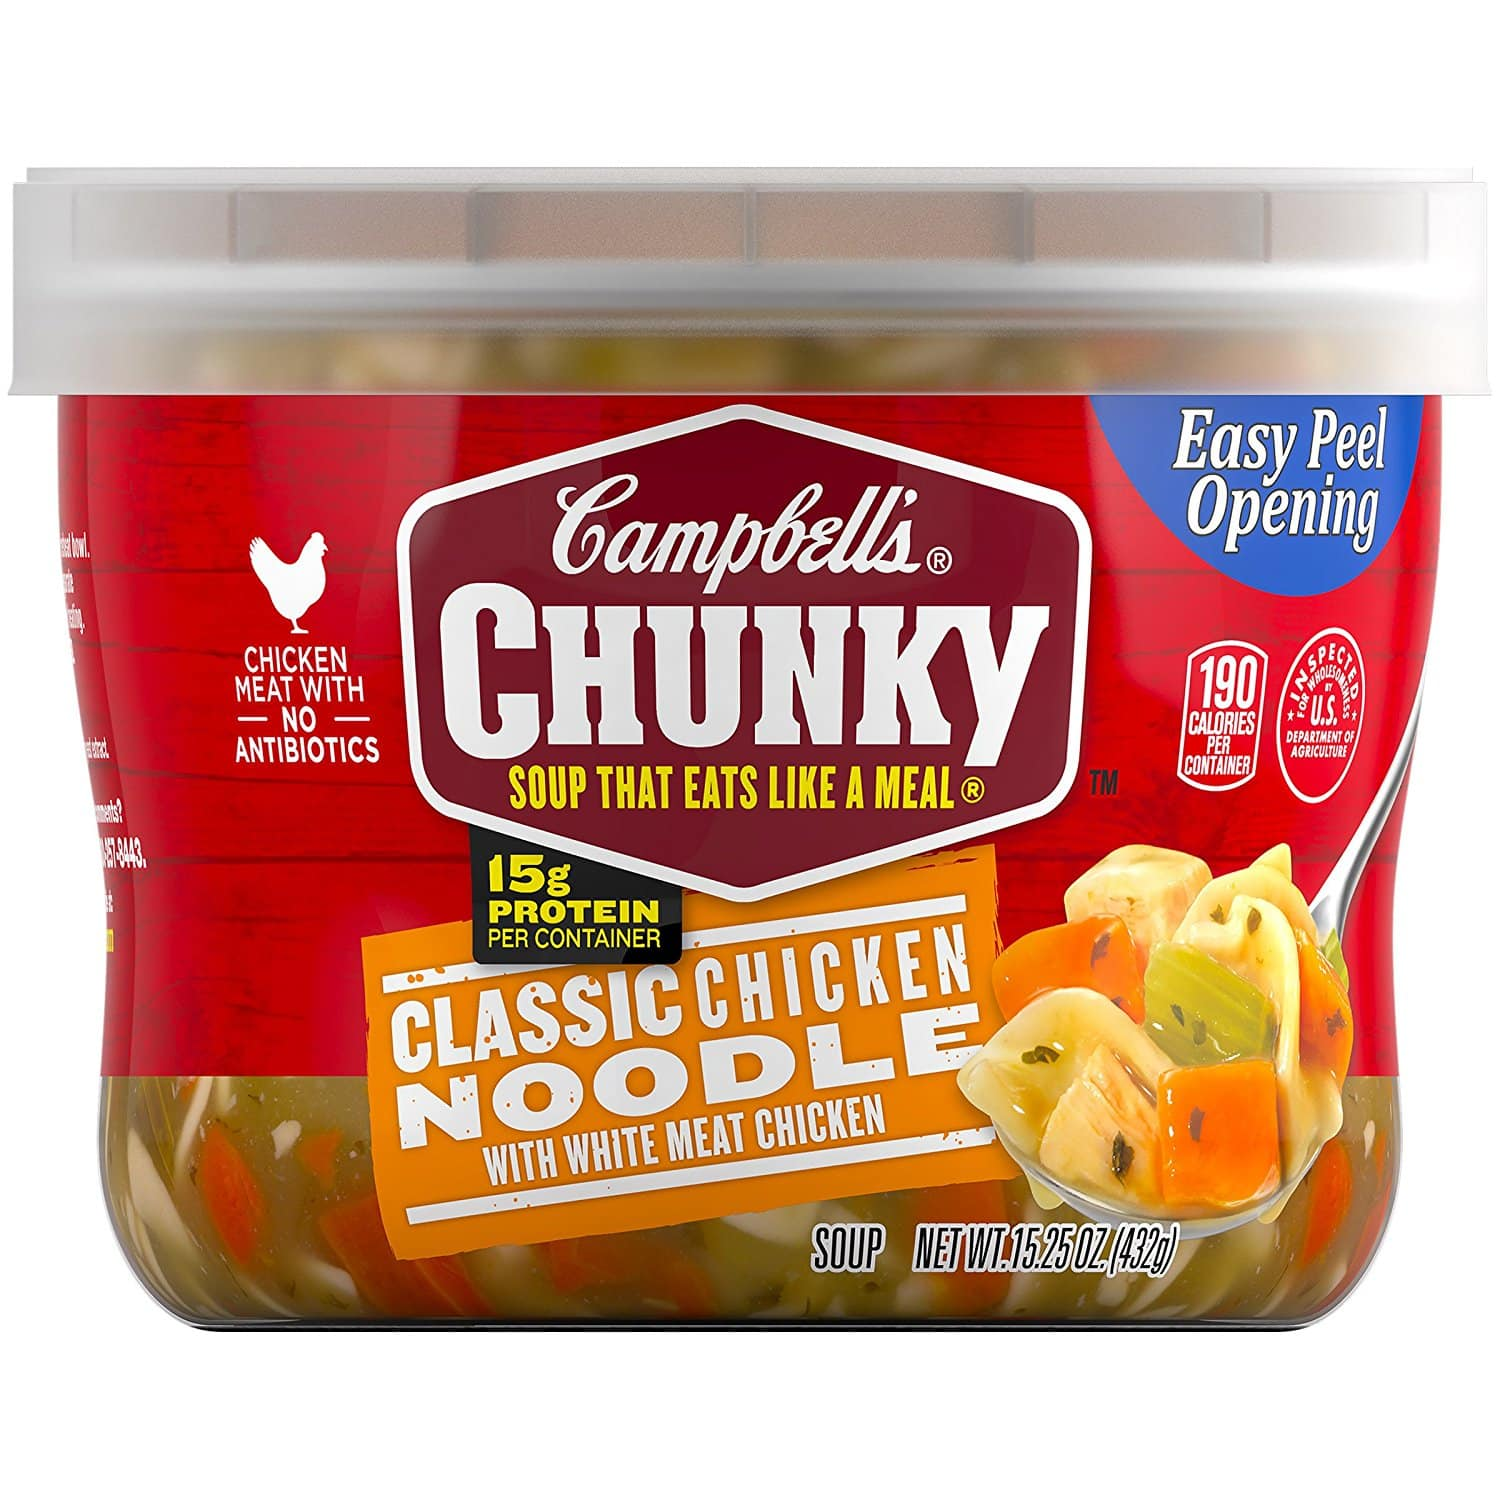 8-Count of Campbells Microwavable Soups - As Low As $5.58 - Amazon S&S